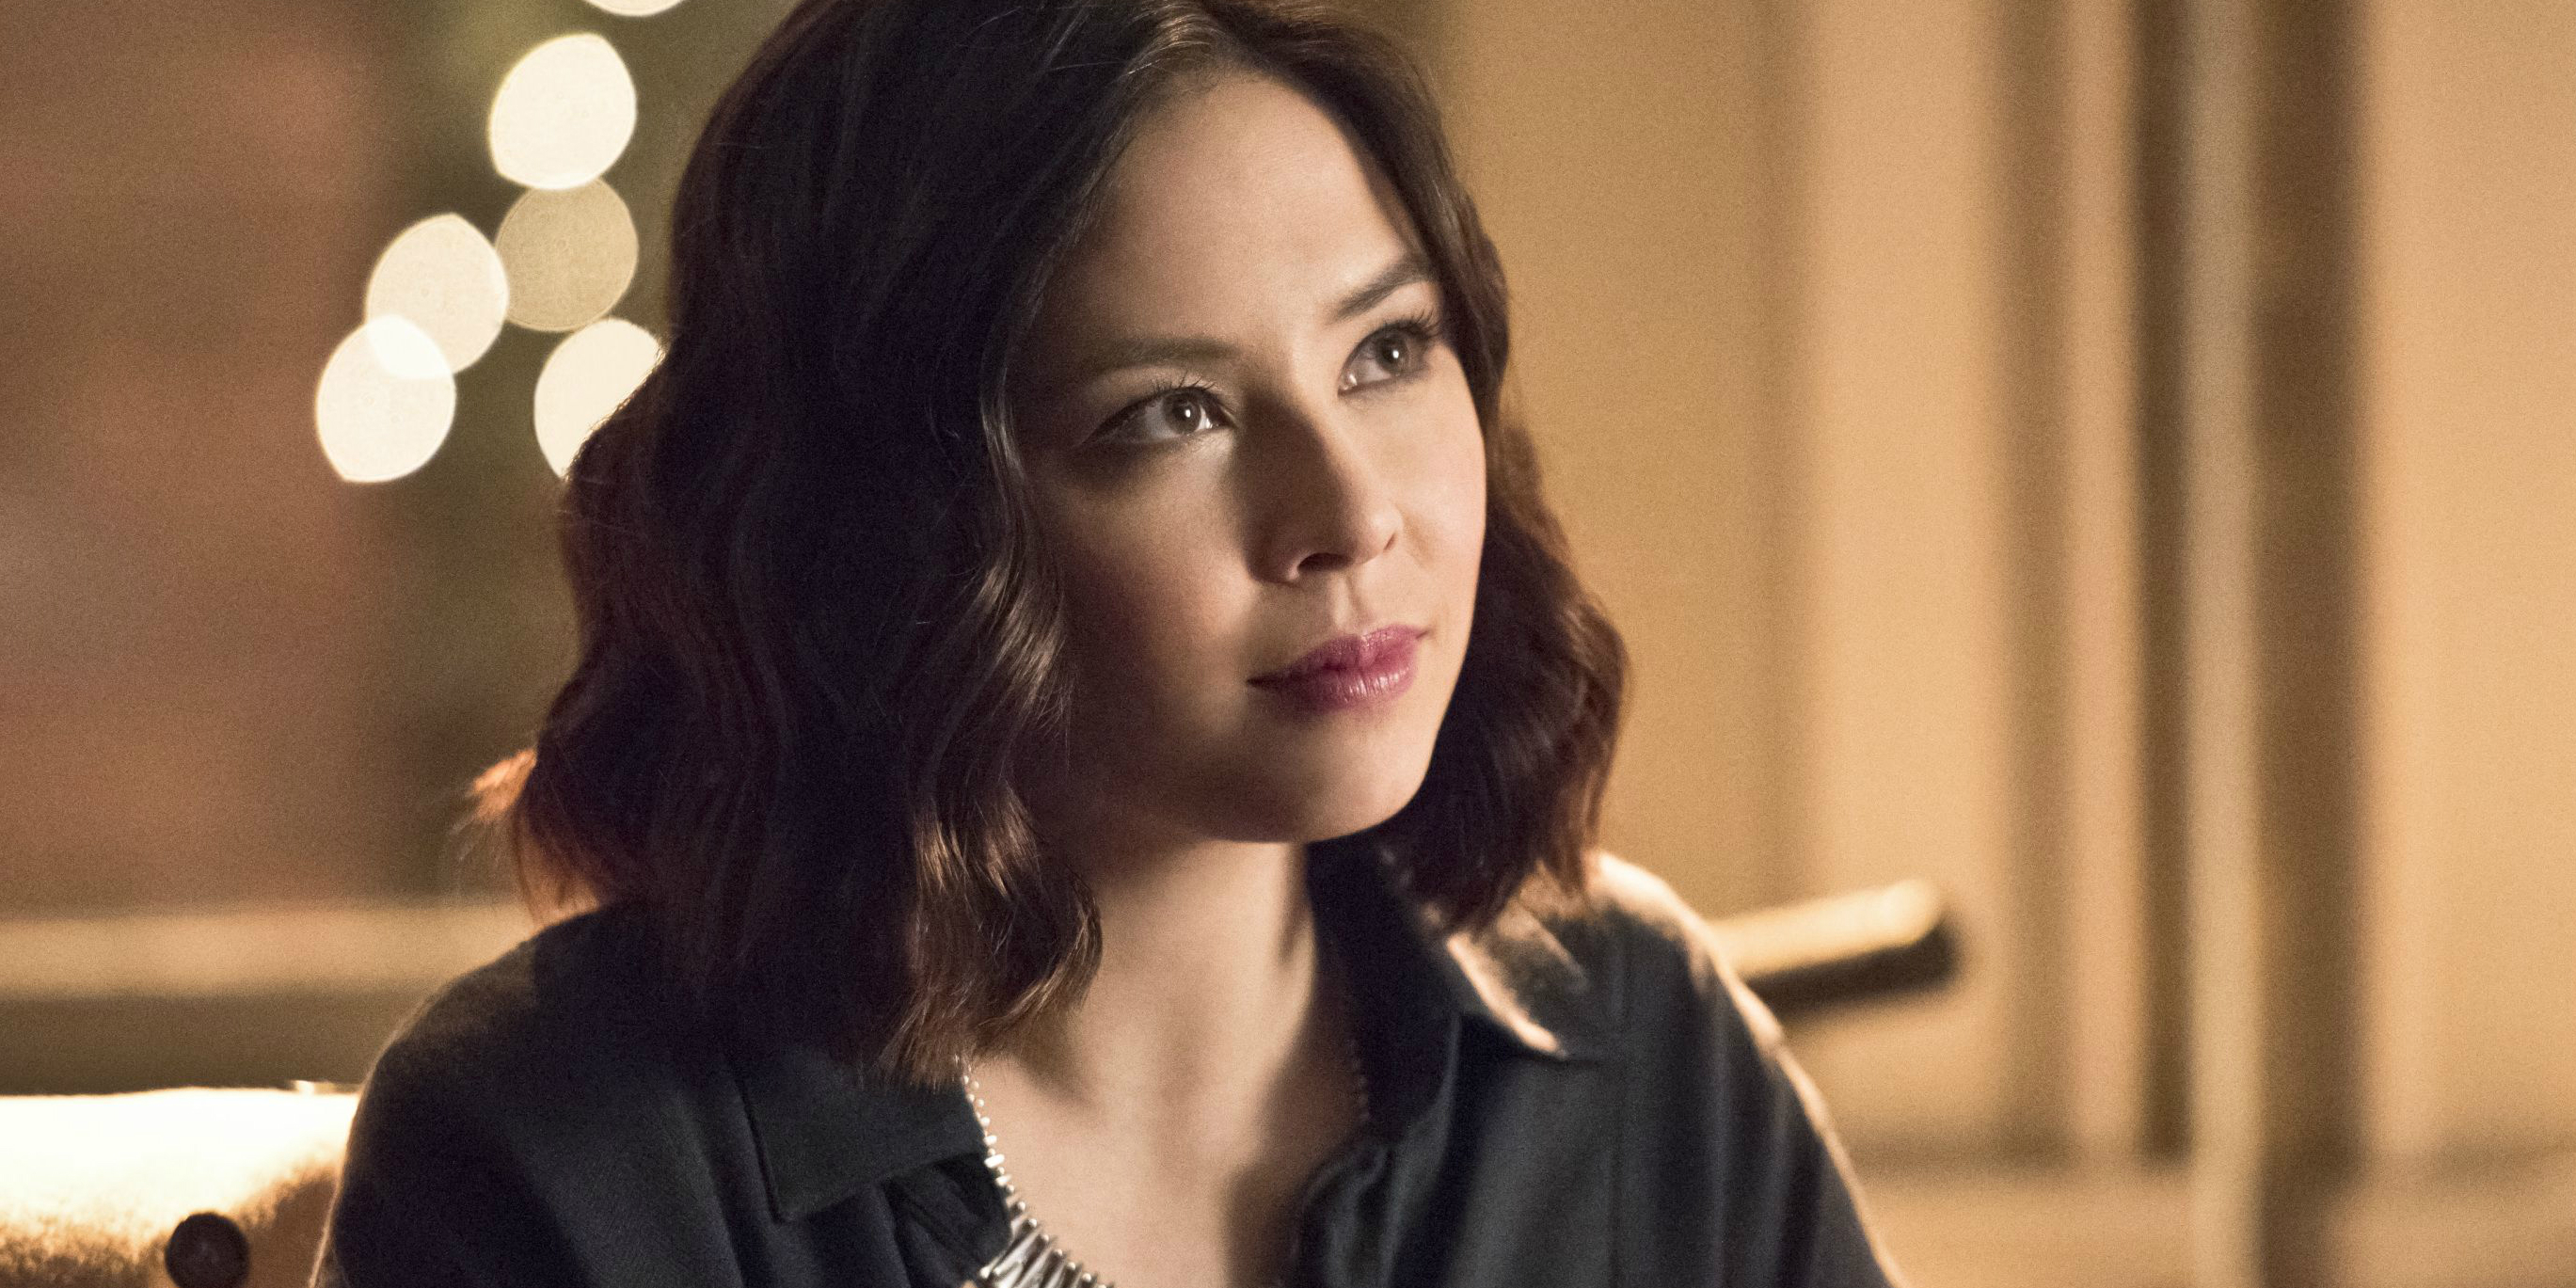 Malese Jow from CW The Flash